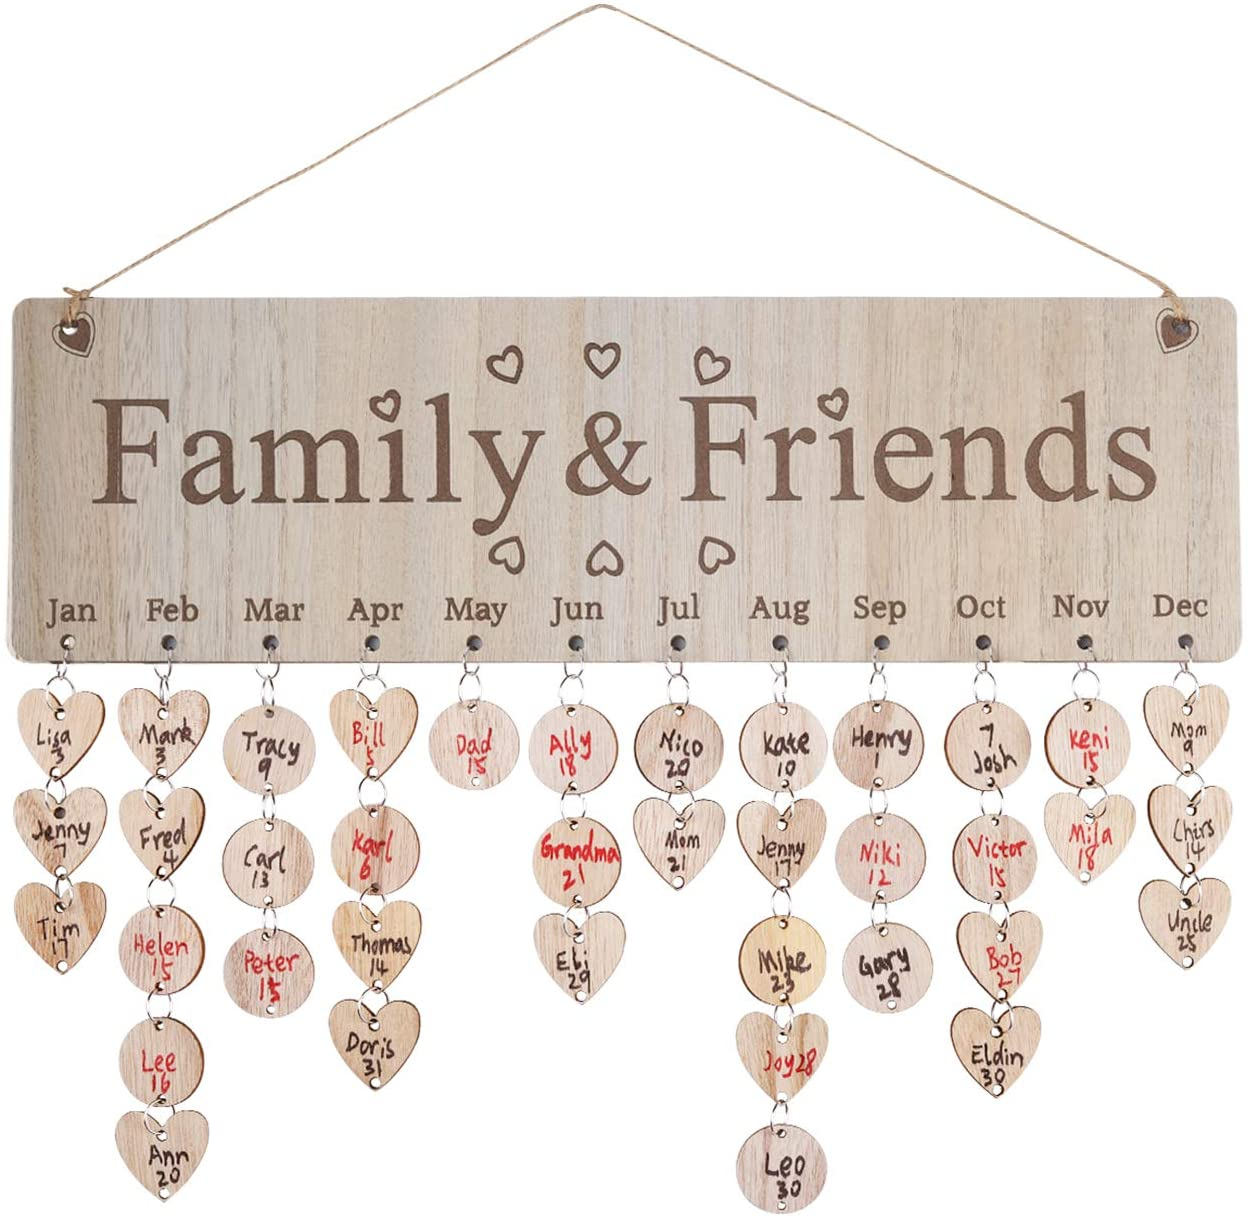 Joy-Leo Gifts for Mom Dad - Wooden Family Birthday Reminder Calendar Board [100 Wood Tags with Holes, Family & Friends with Hearts Pattern], Decorative Birthday Tracker Plaque Wall Hanging